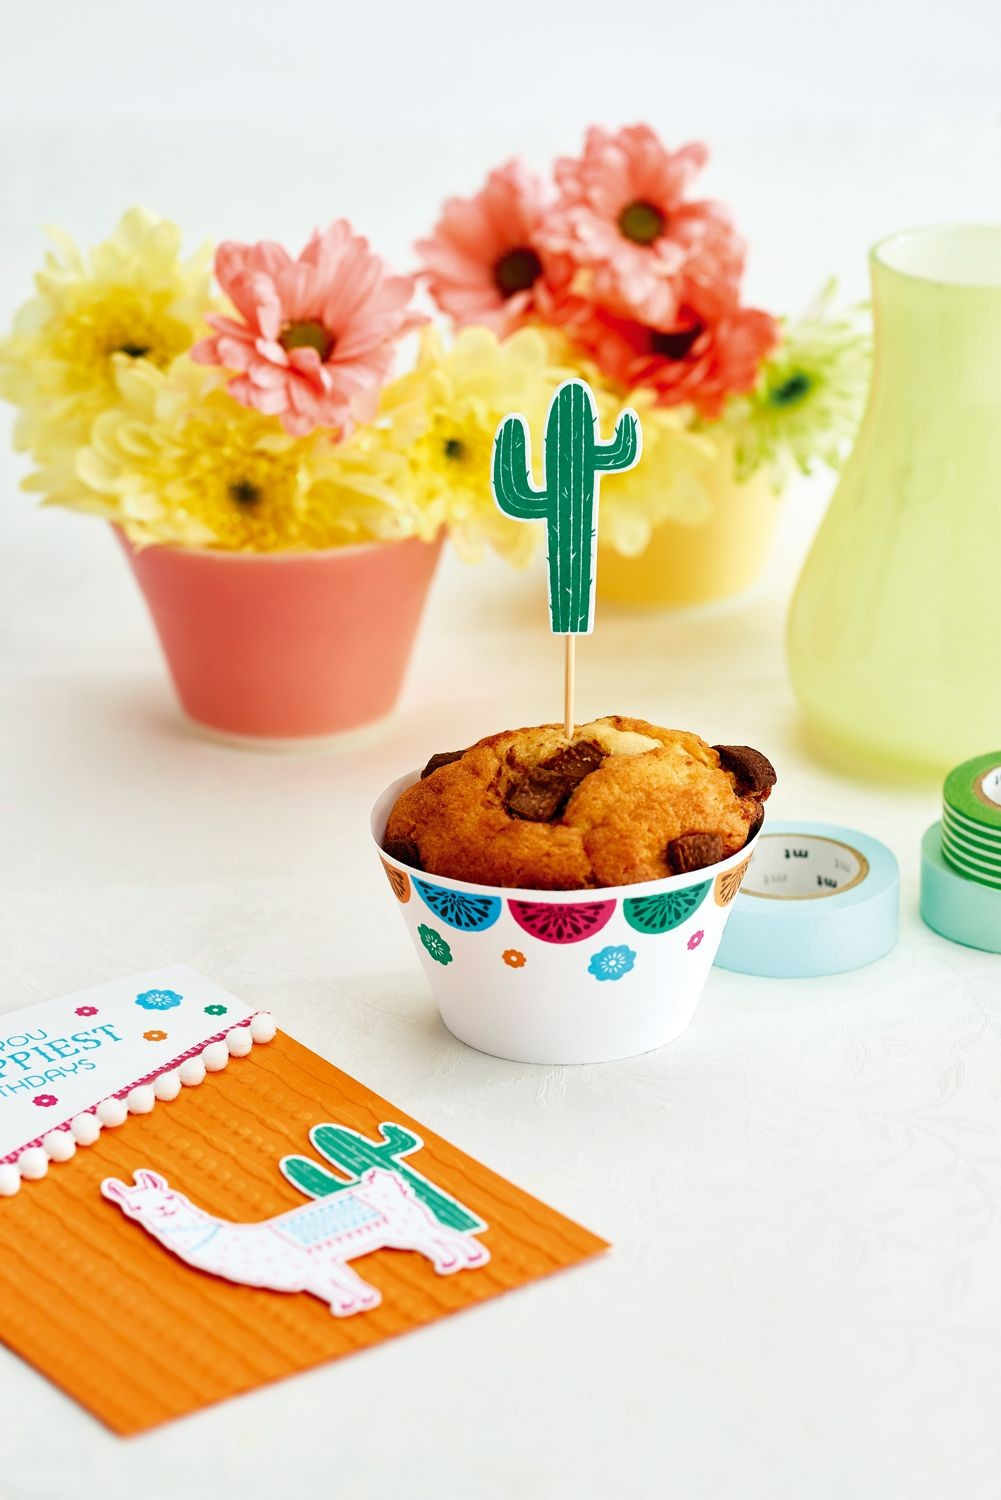 Food Papercraft How Adorable is This Muffin Case and topper Pairing From